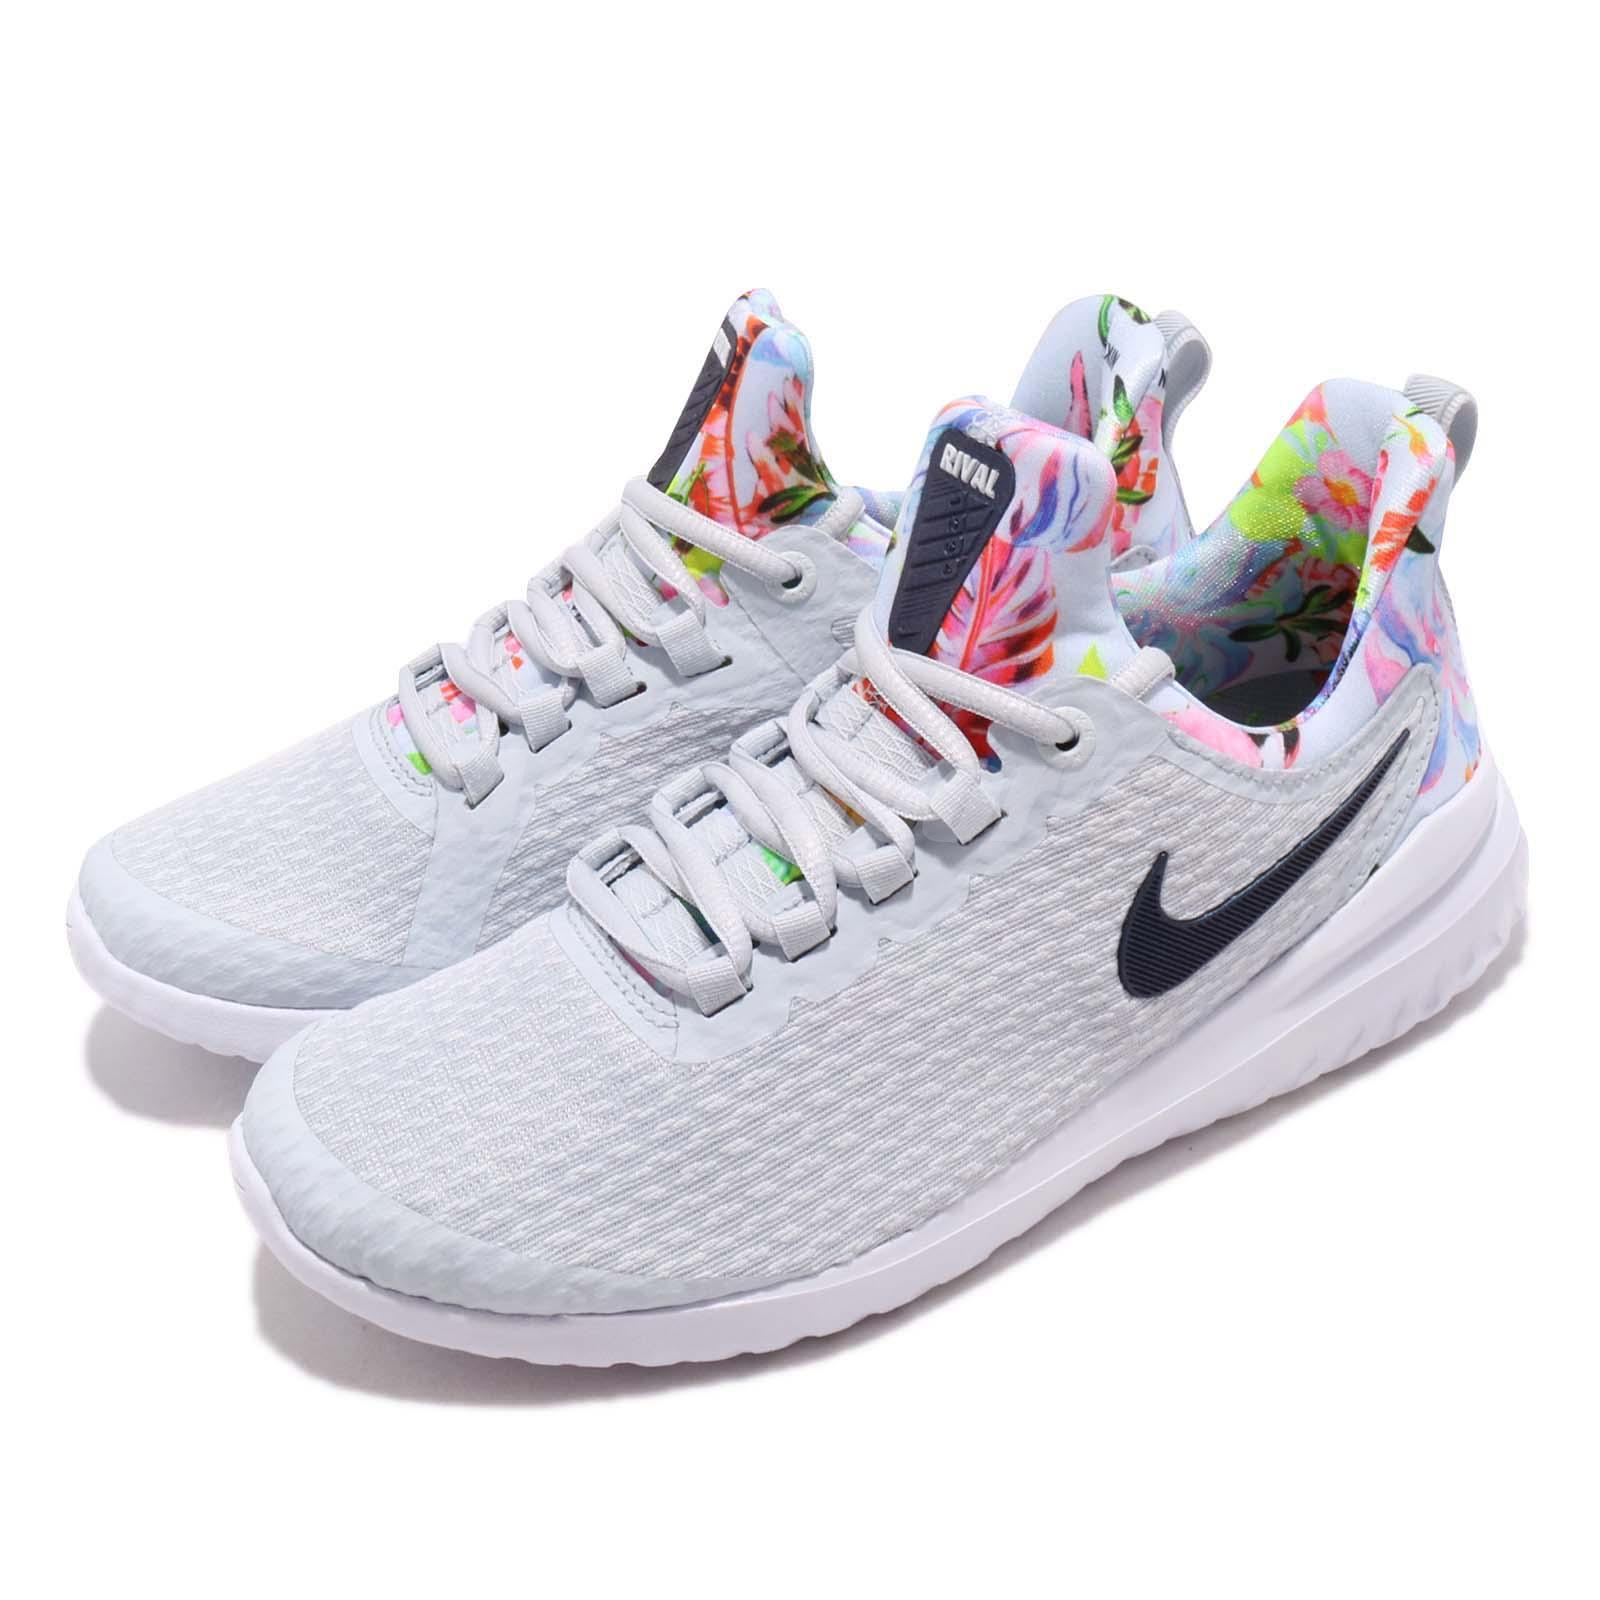 87b52fe9b Details about Nike Wmns Renew Rival Premium Floral Print Womens Running  Shoes AV2606-001